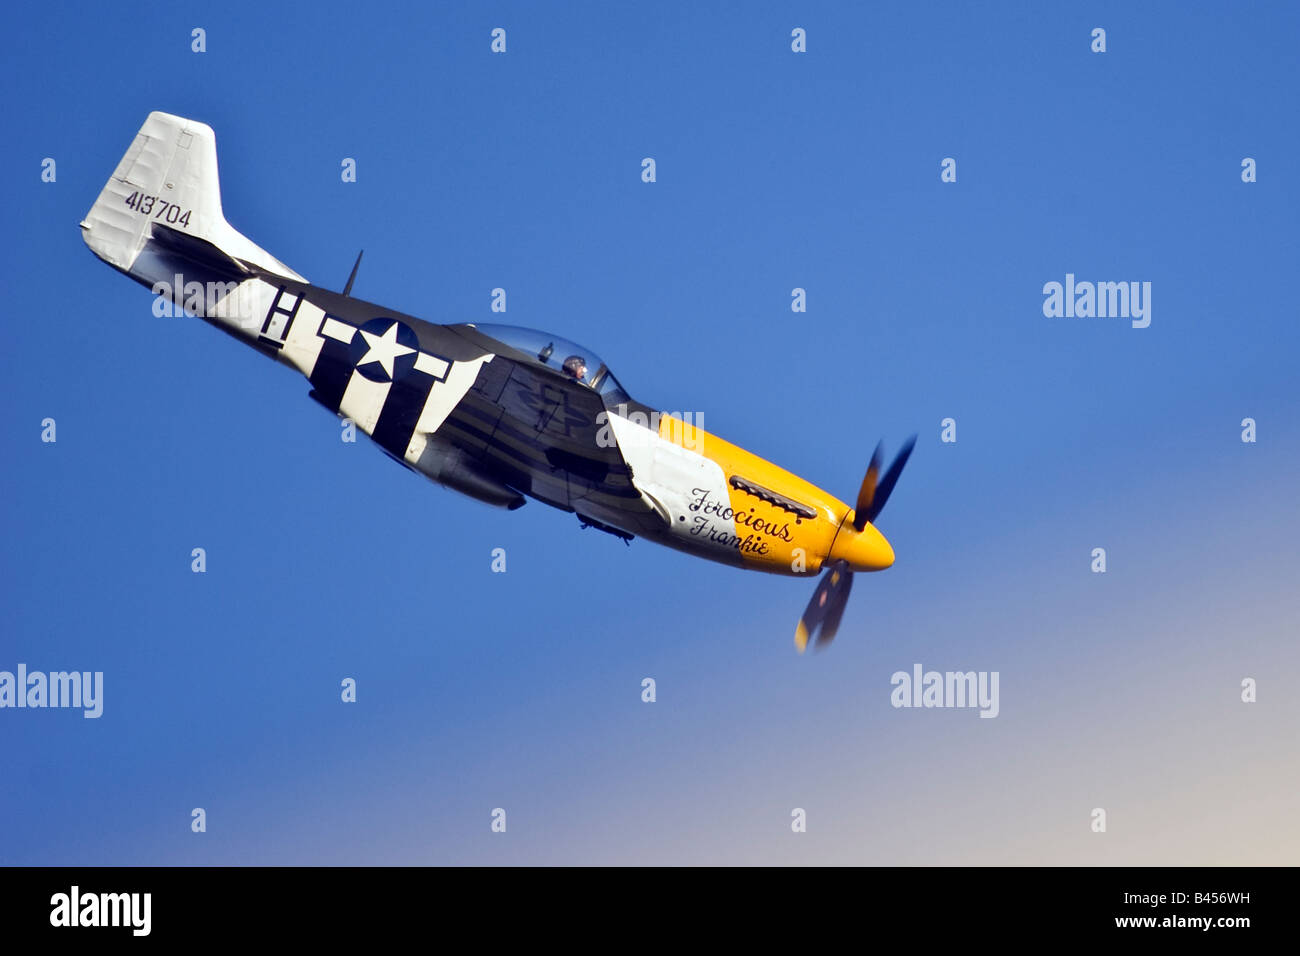 """P51 Mustang """"Ferocious Frankie"""" aircraft display at the Goodwood Revival Sussex United Kingdom Great Britain England Stock Photo"""